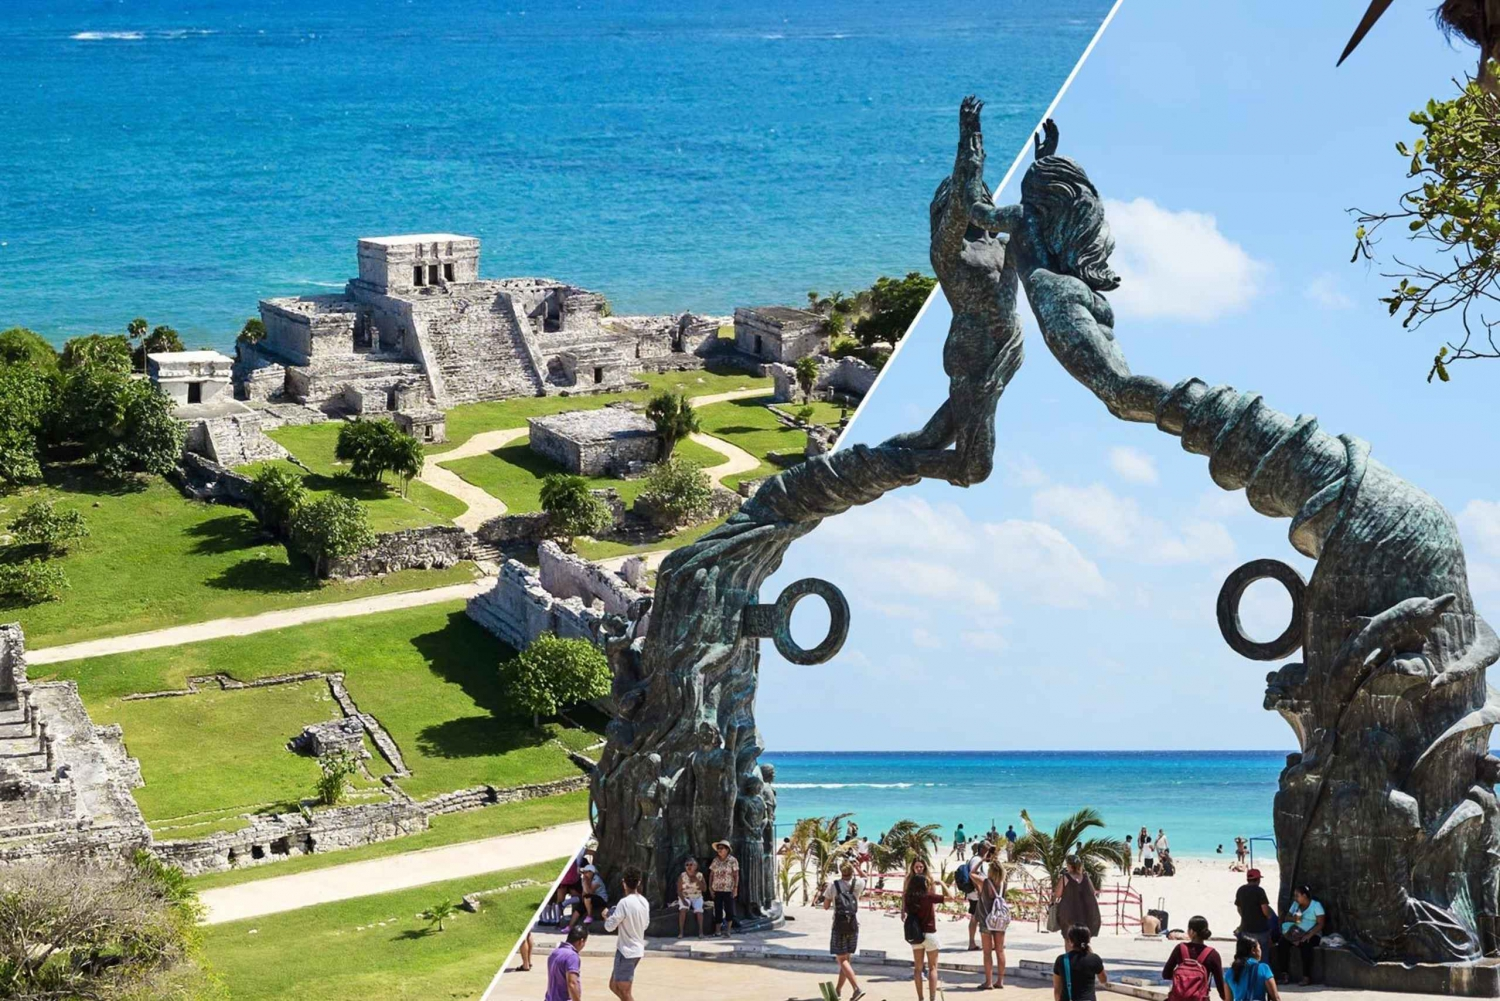 From Tulum and Playa del Carmen Tour